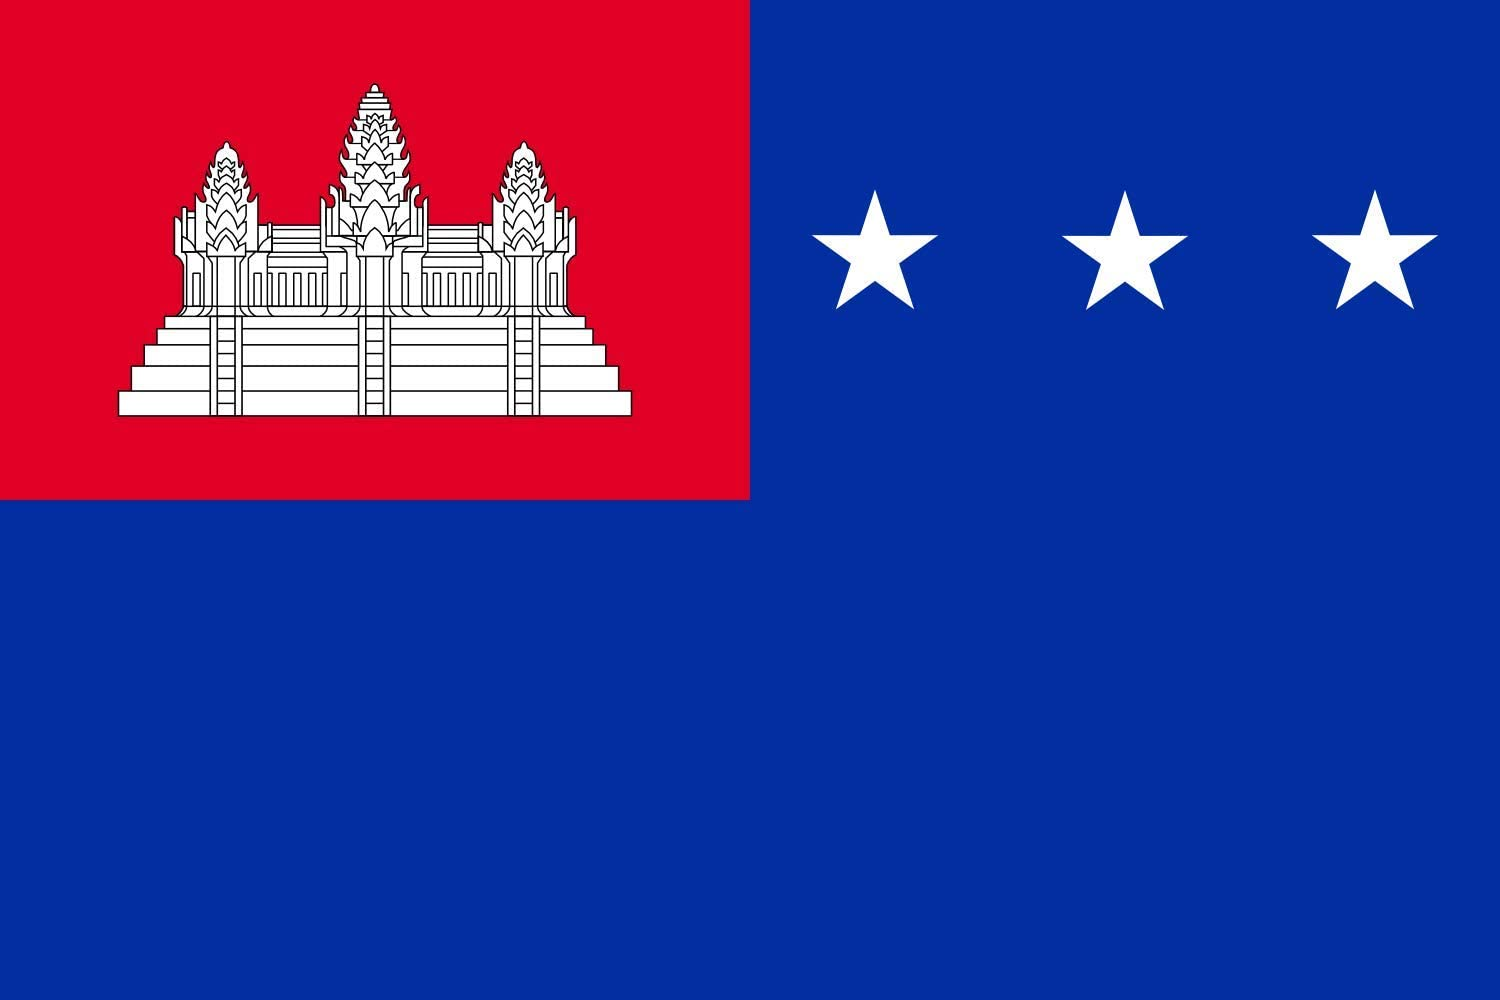 magFlags Large Flag Khmer Republic, in use from October 1970 to 1975 | Landscape Flag | 1.35m² | 14.5sqft | 90x150cm | 3x5ft - 100% Made in Germany - Long Lasting Outdoor Flag